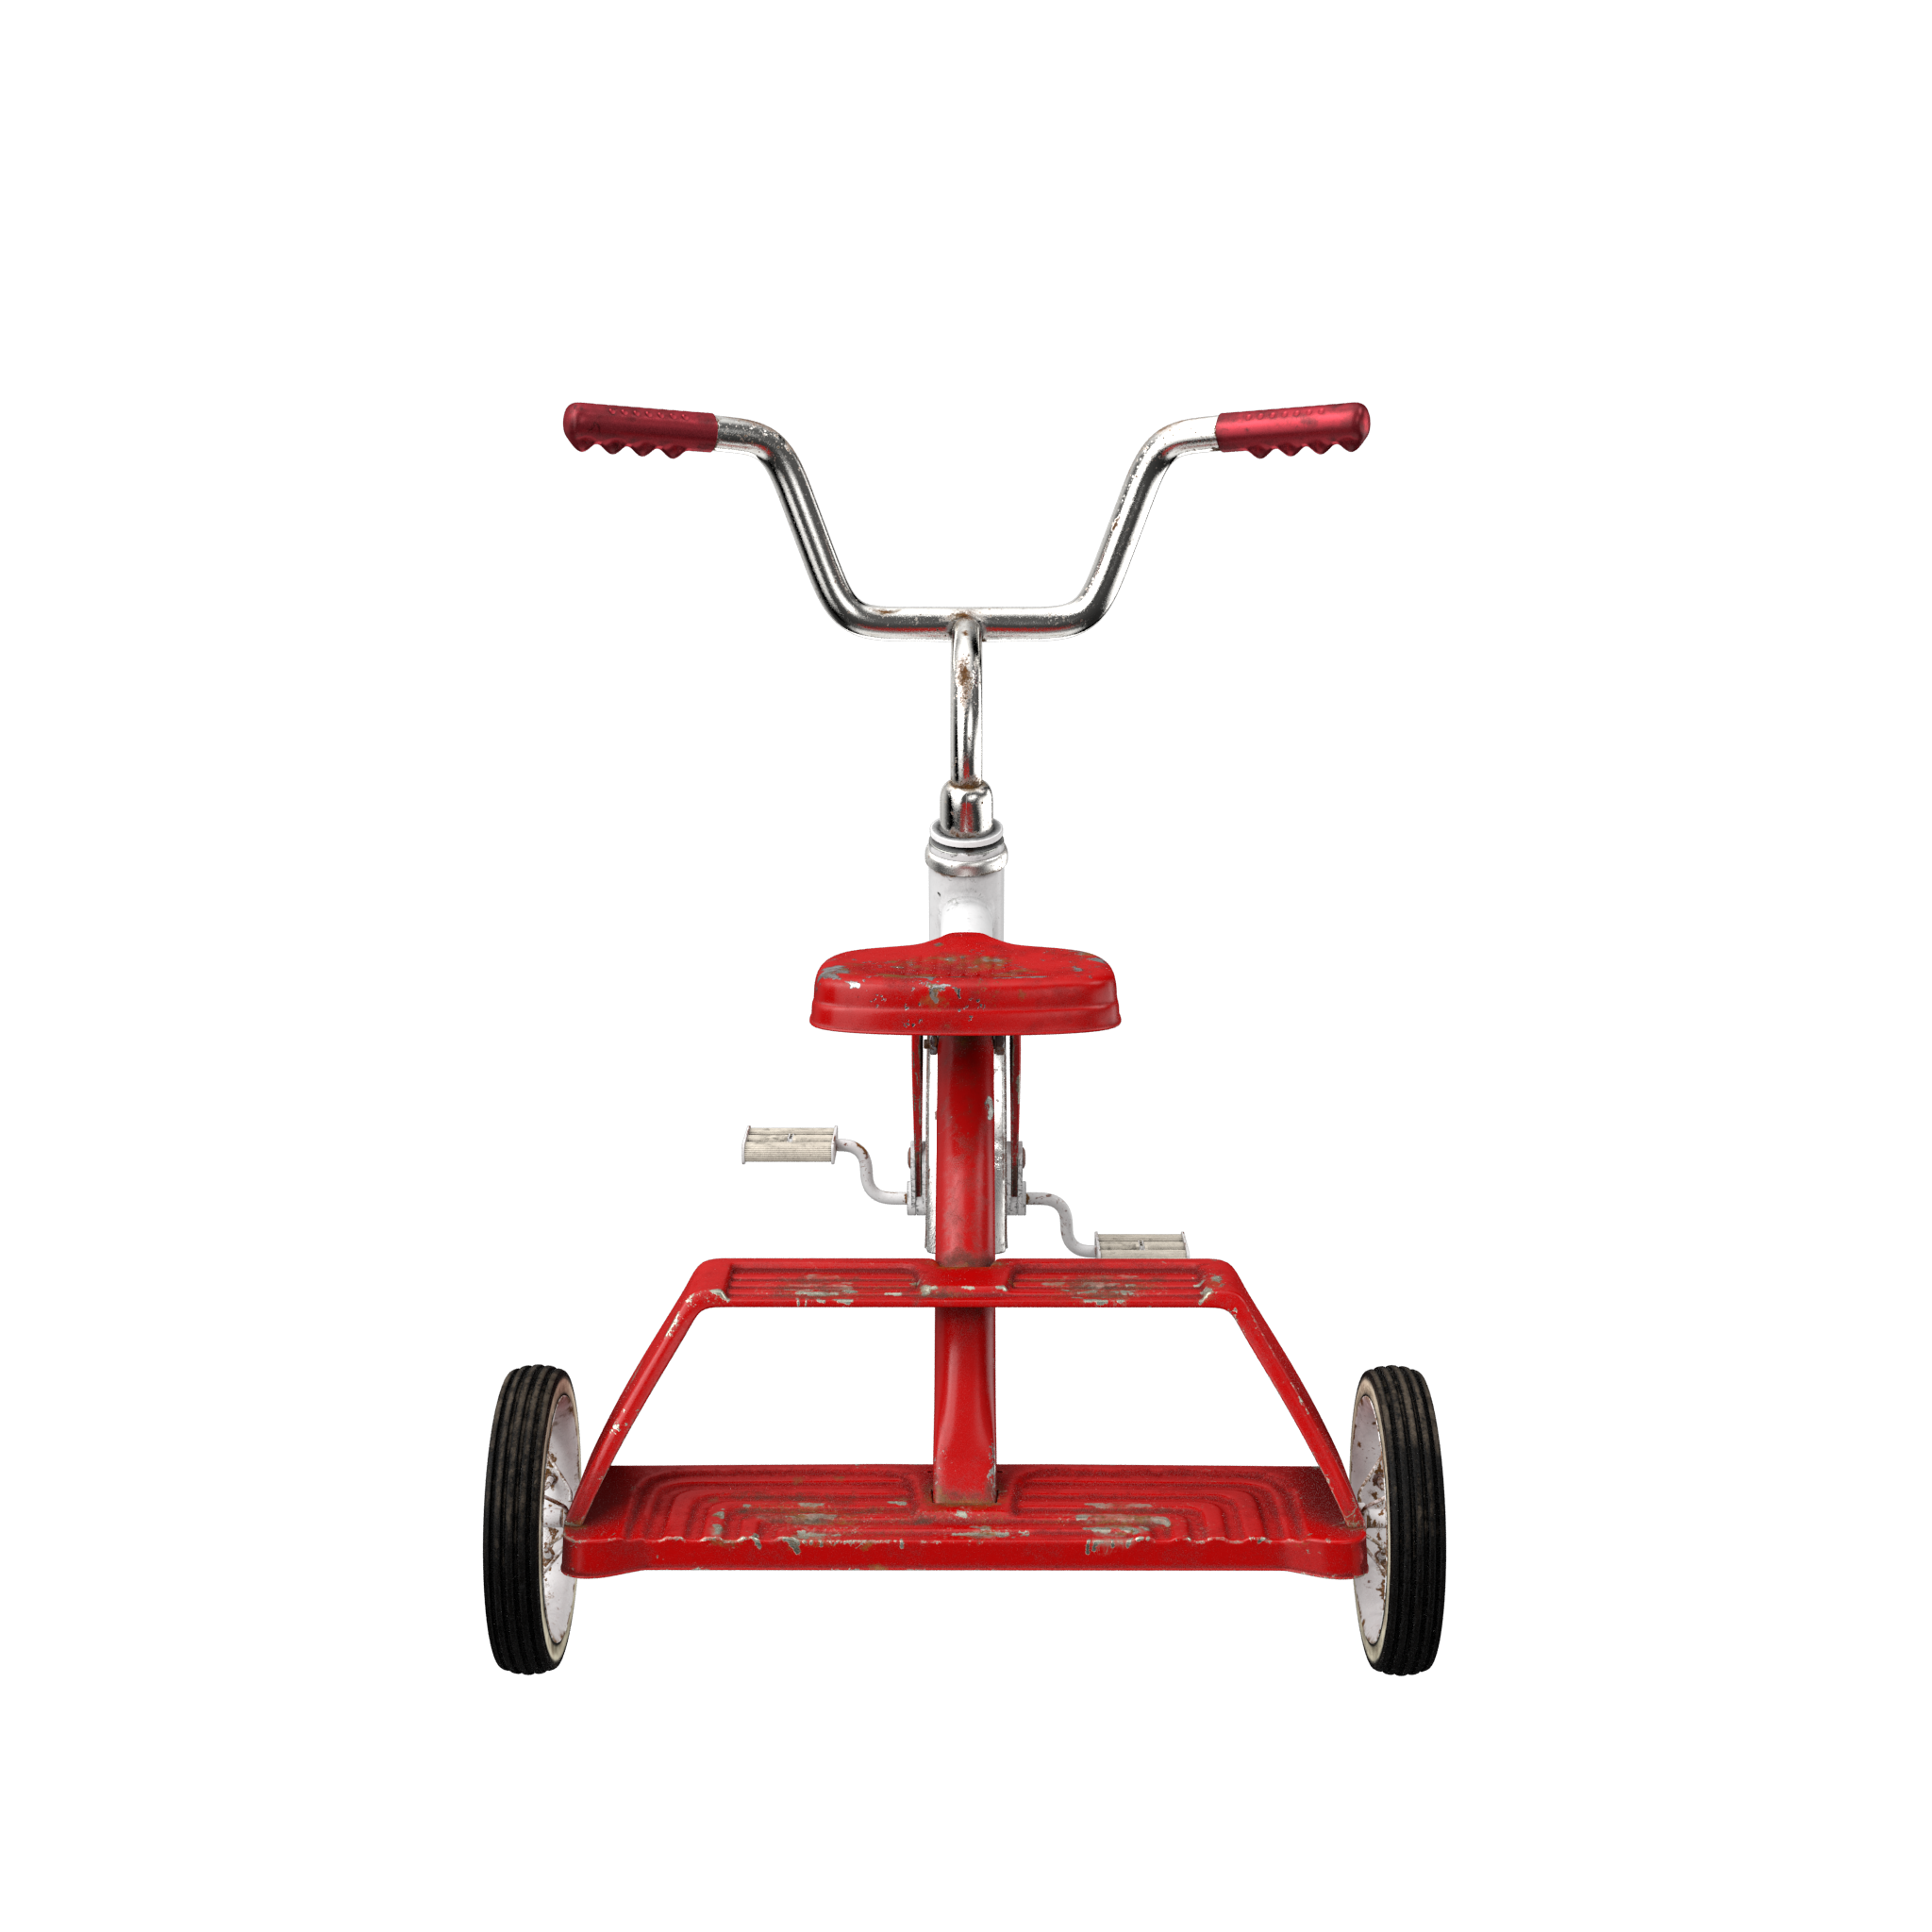 Dirty Vintage Tricycle Png Image For Free Download